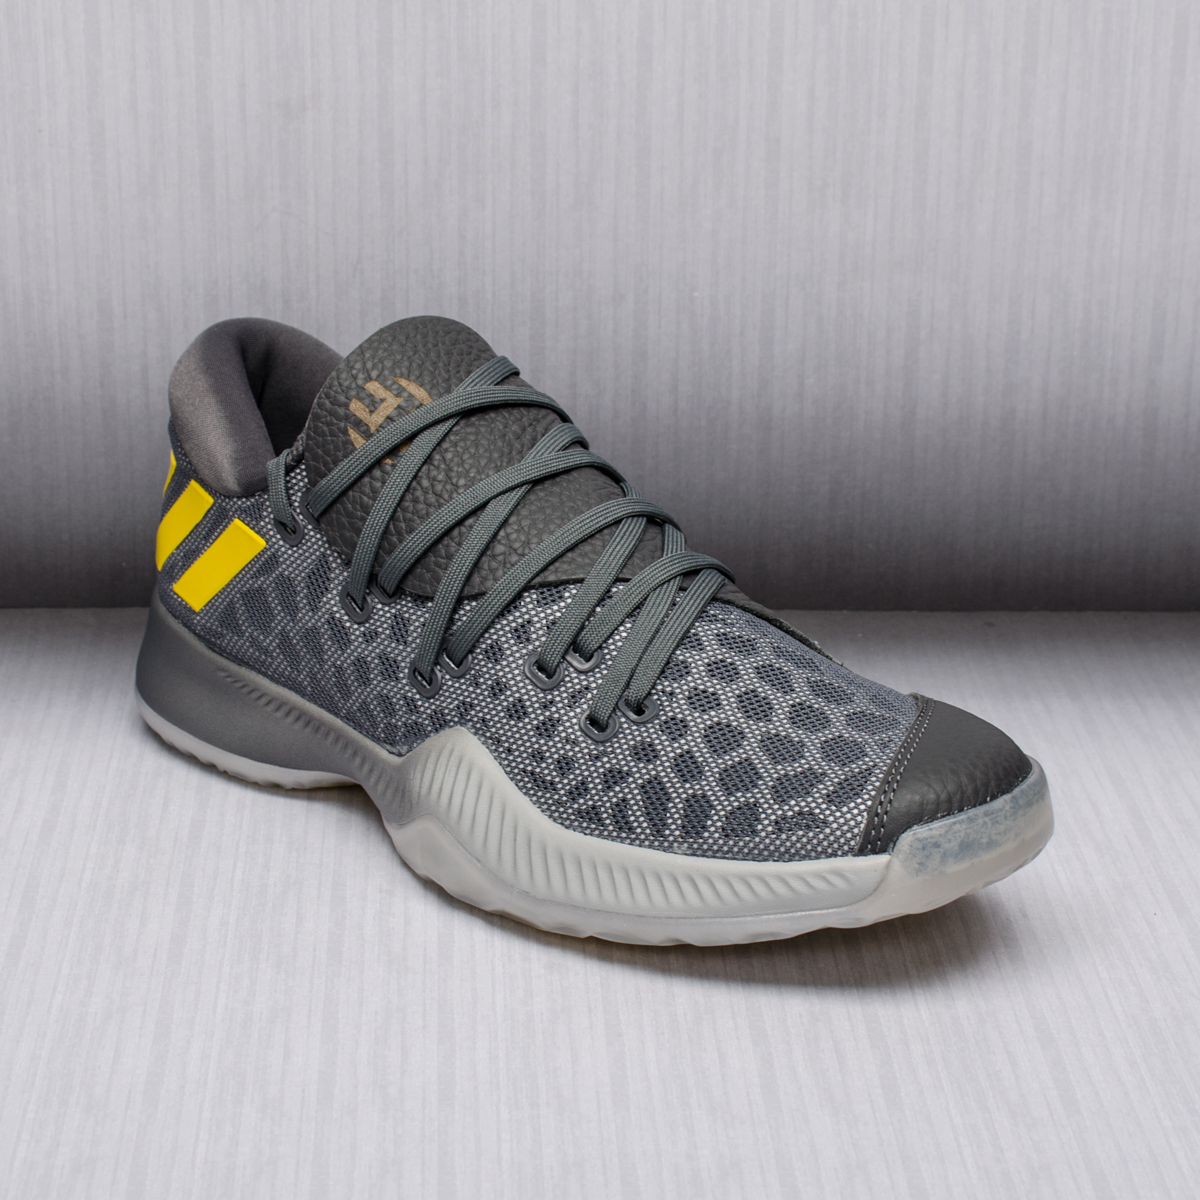 Mens Harden B/E Basketball Shoes adidas